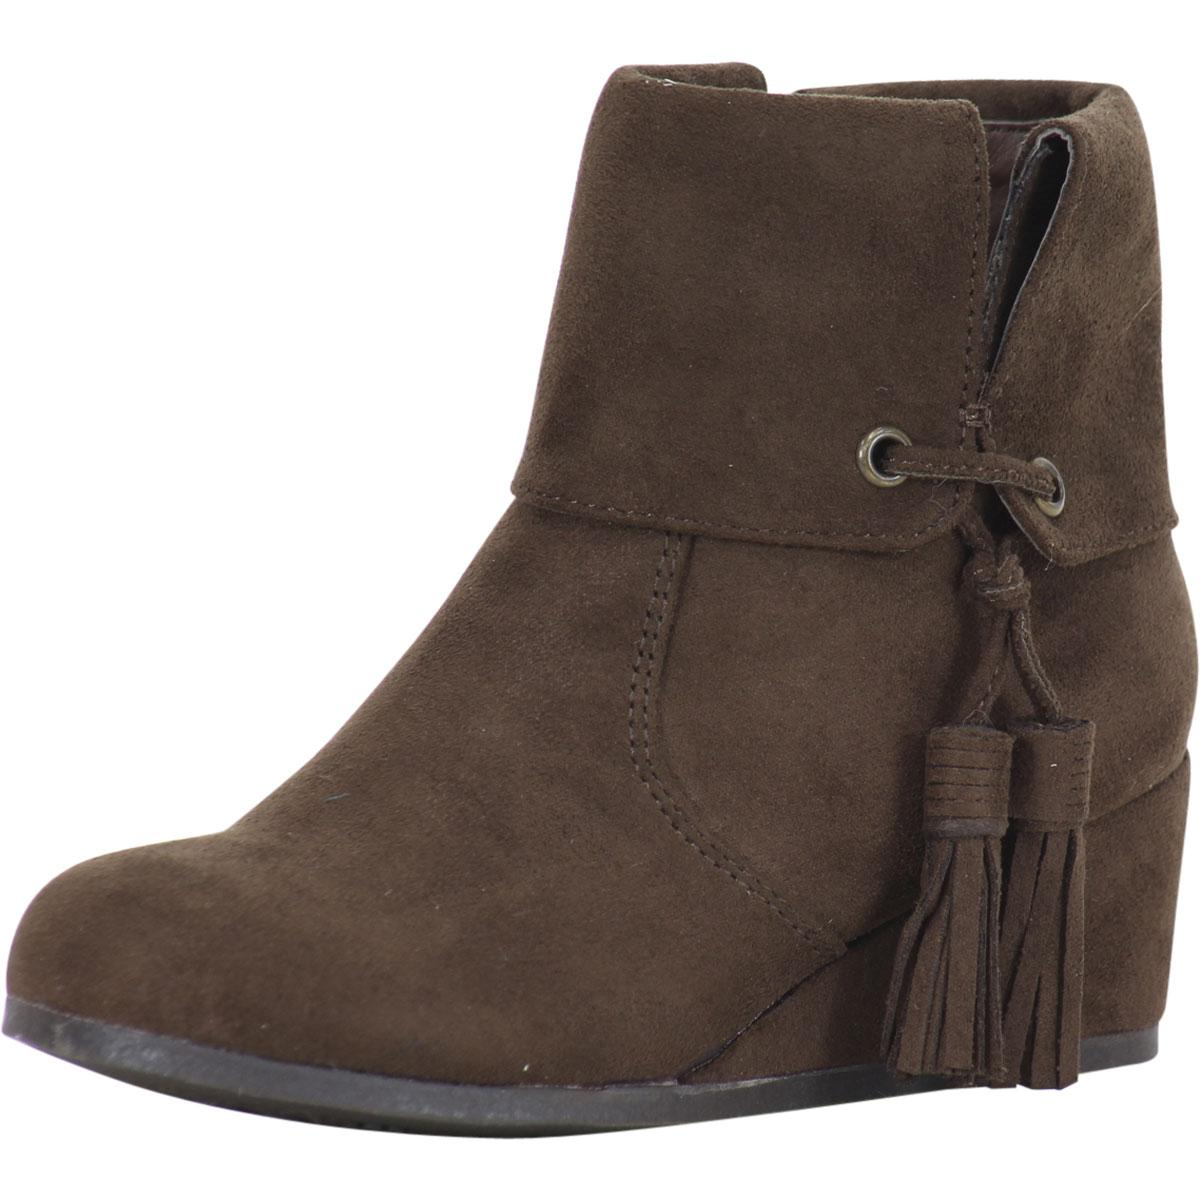 Image of Sugar Little/Big Girl's BonBon Wedge Heel Ankle Boots Shoes - Chocolate - 3 M US Little Kid